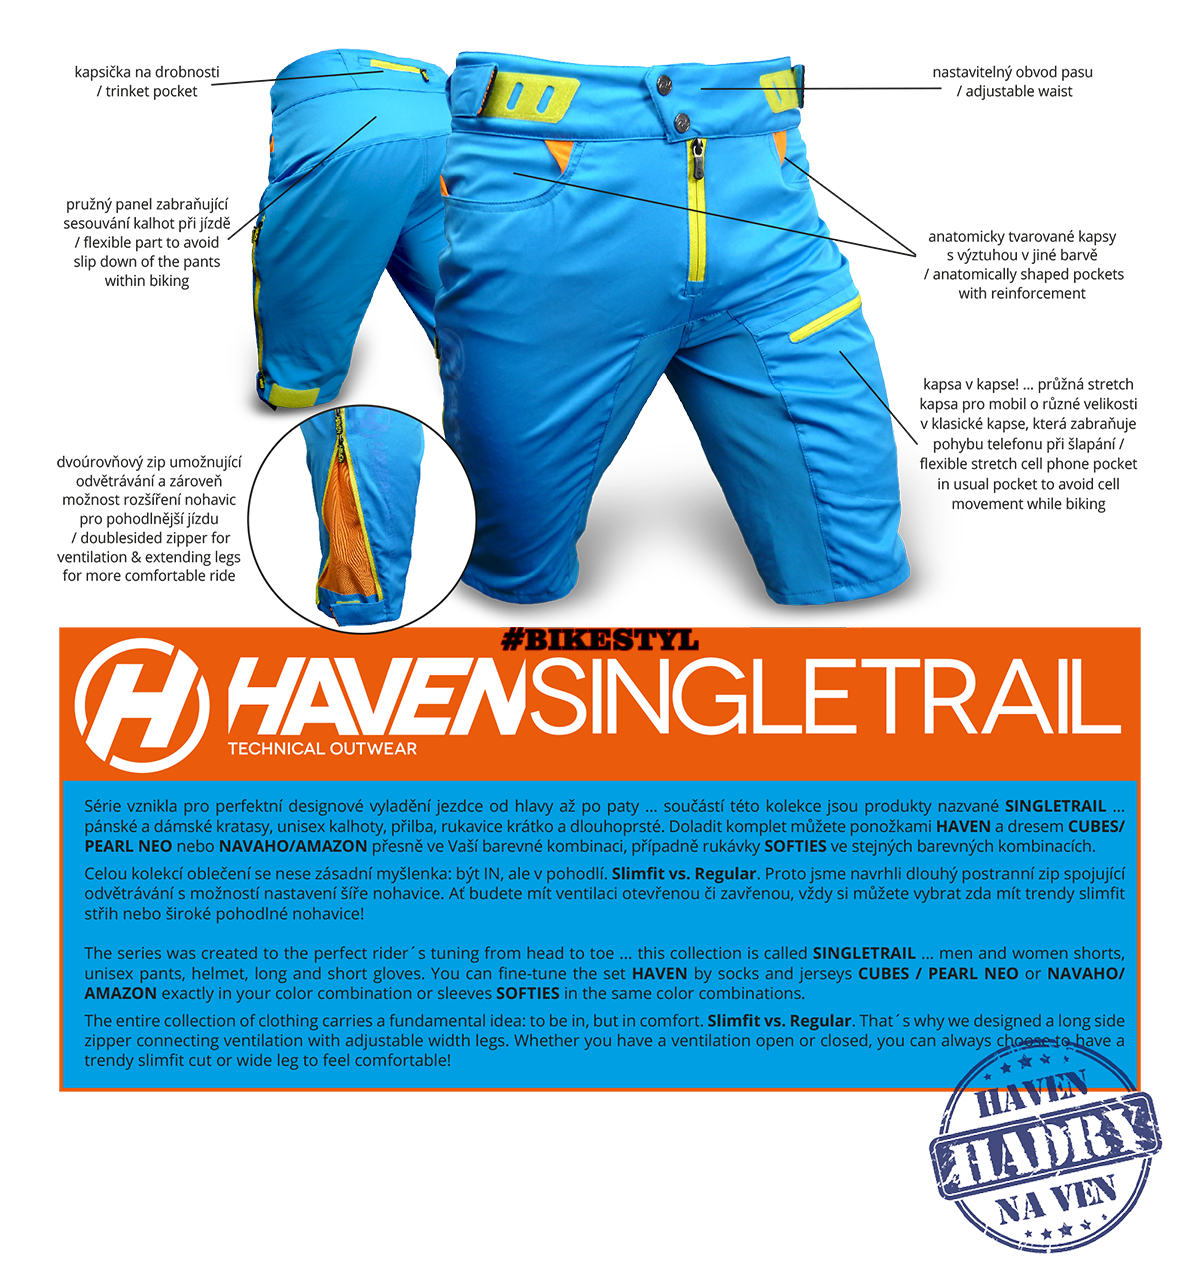 Kraťasy Haven Singletail návod bike shorts